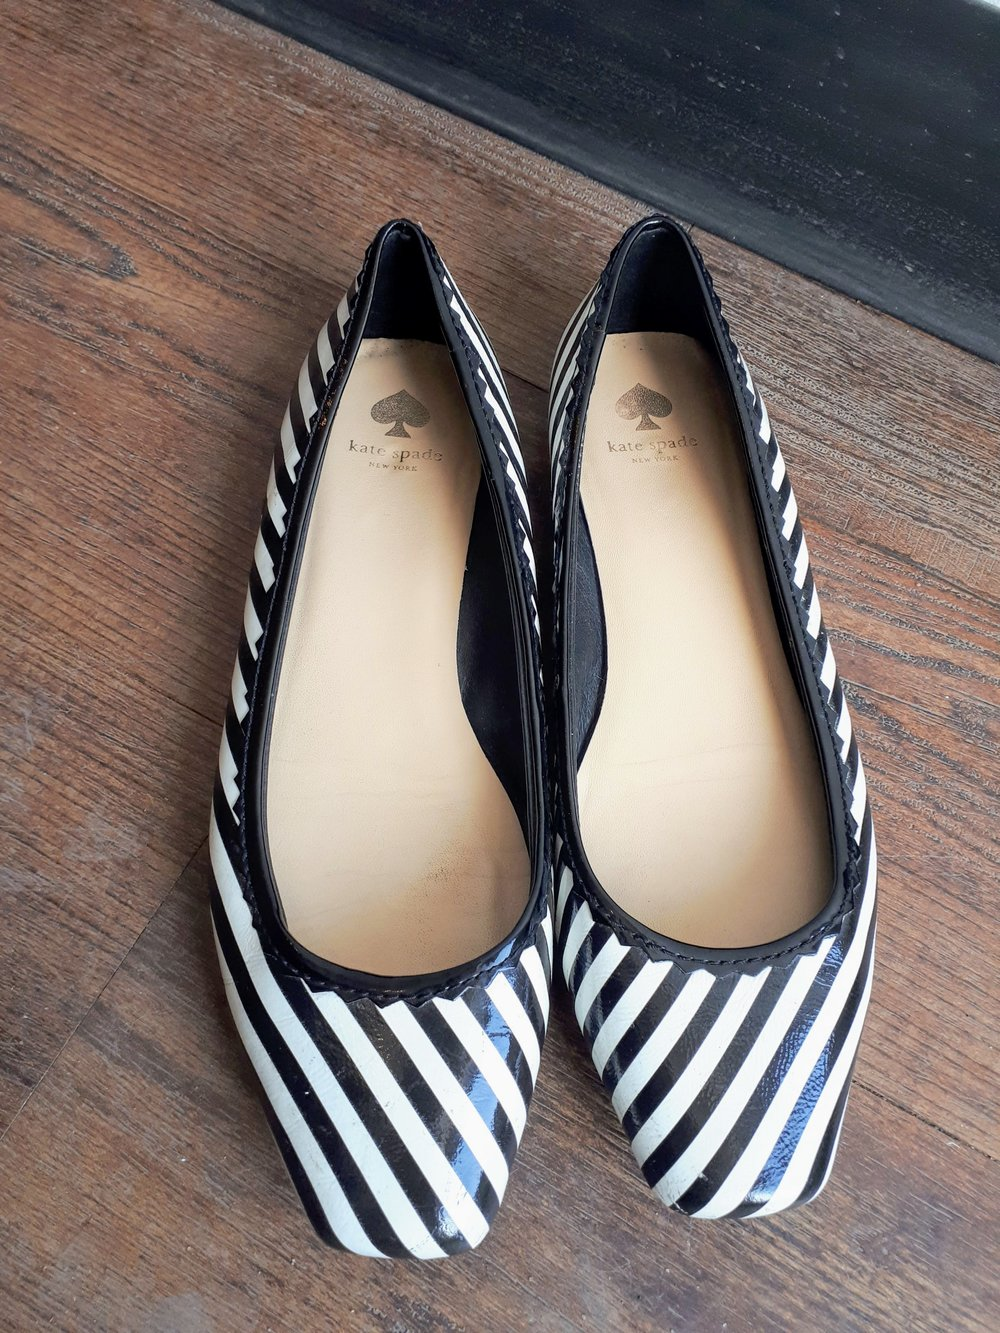 Kate Spade shoes; Size 8.5, $52